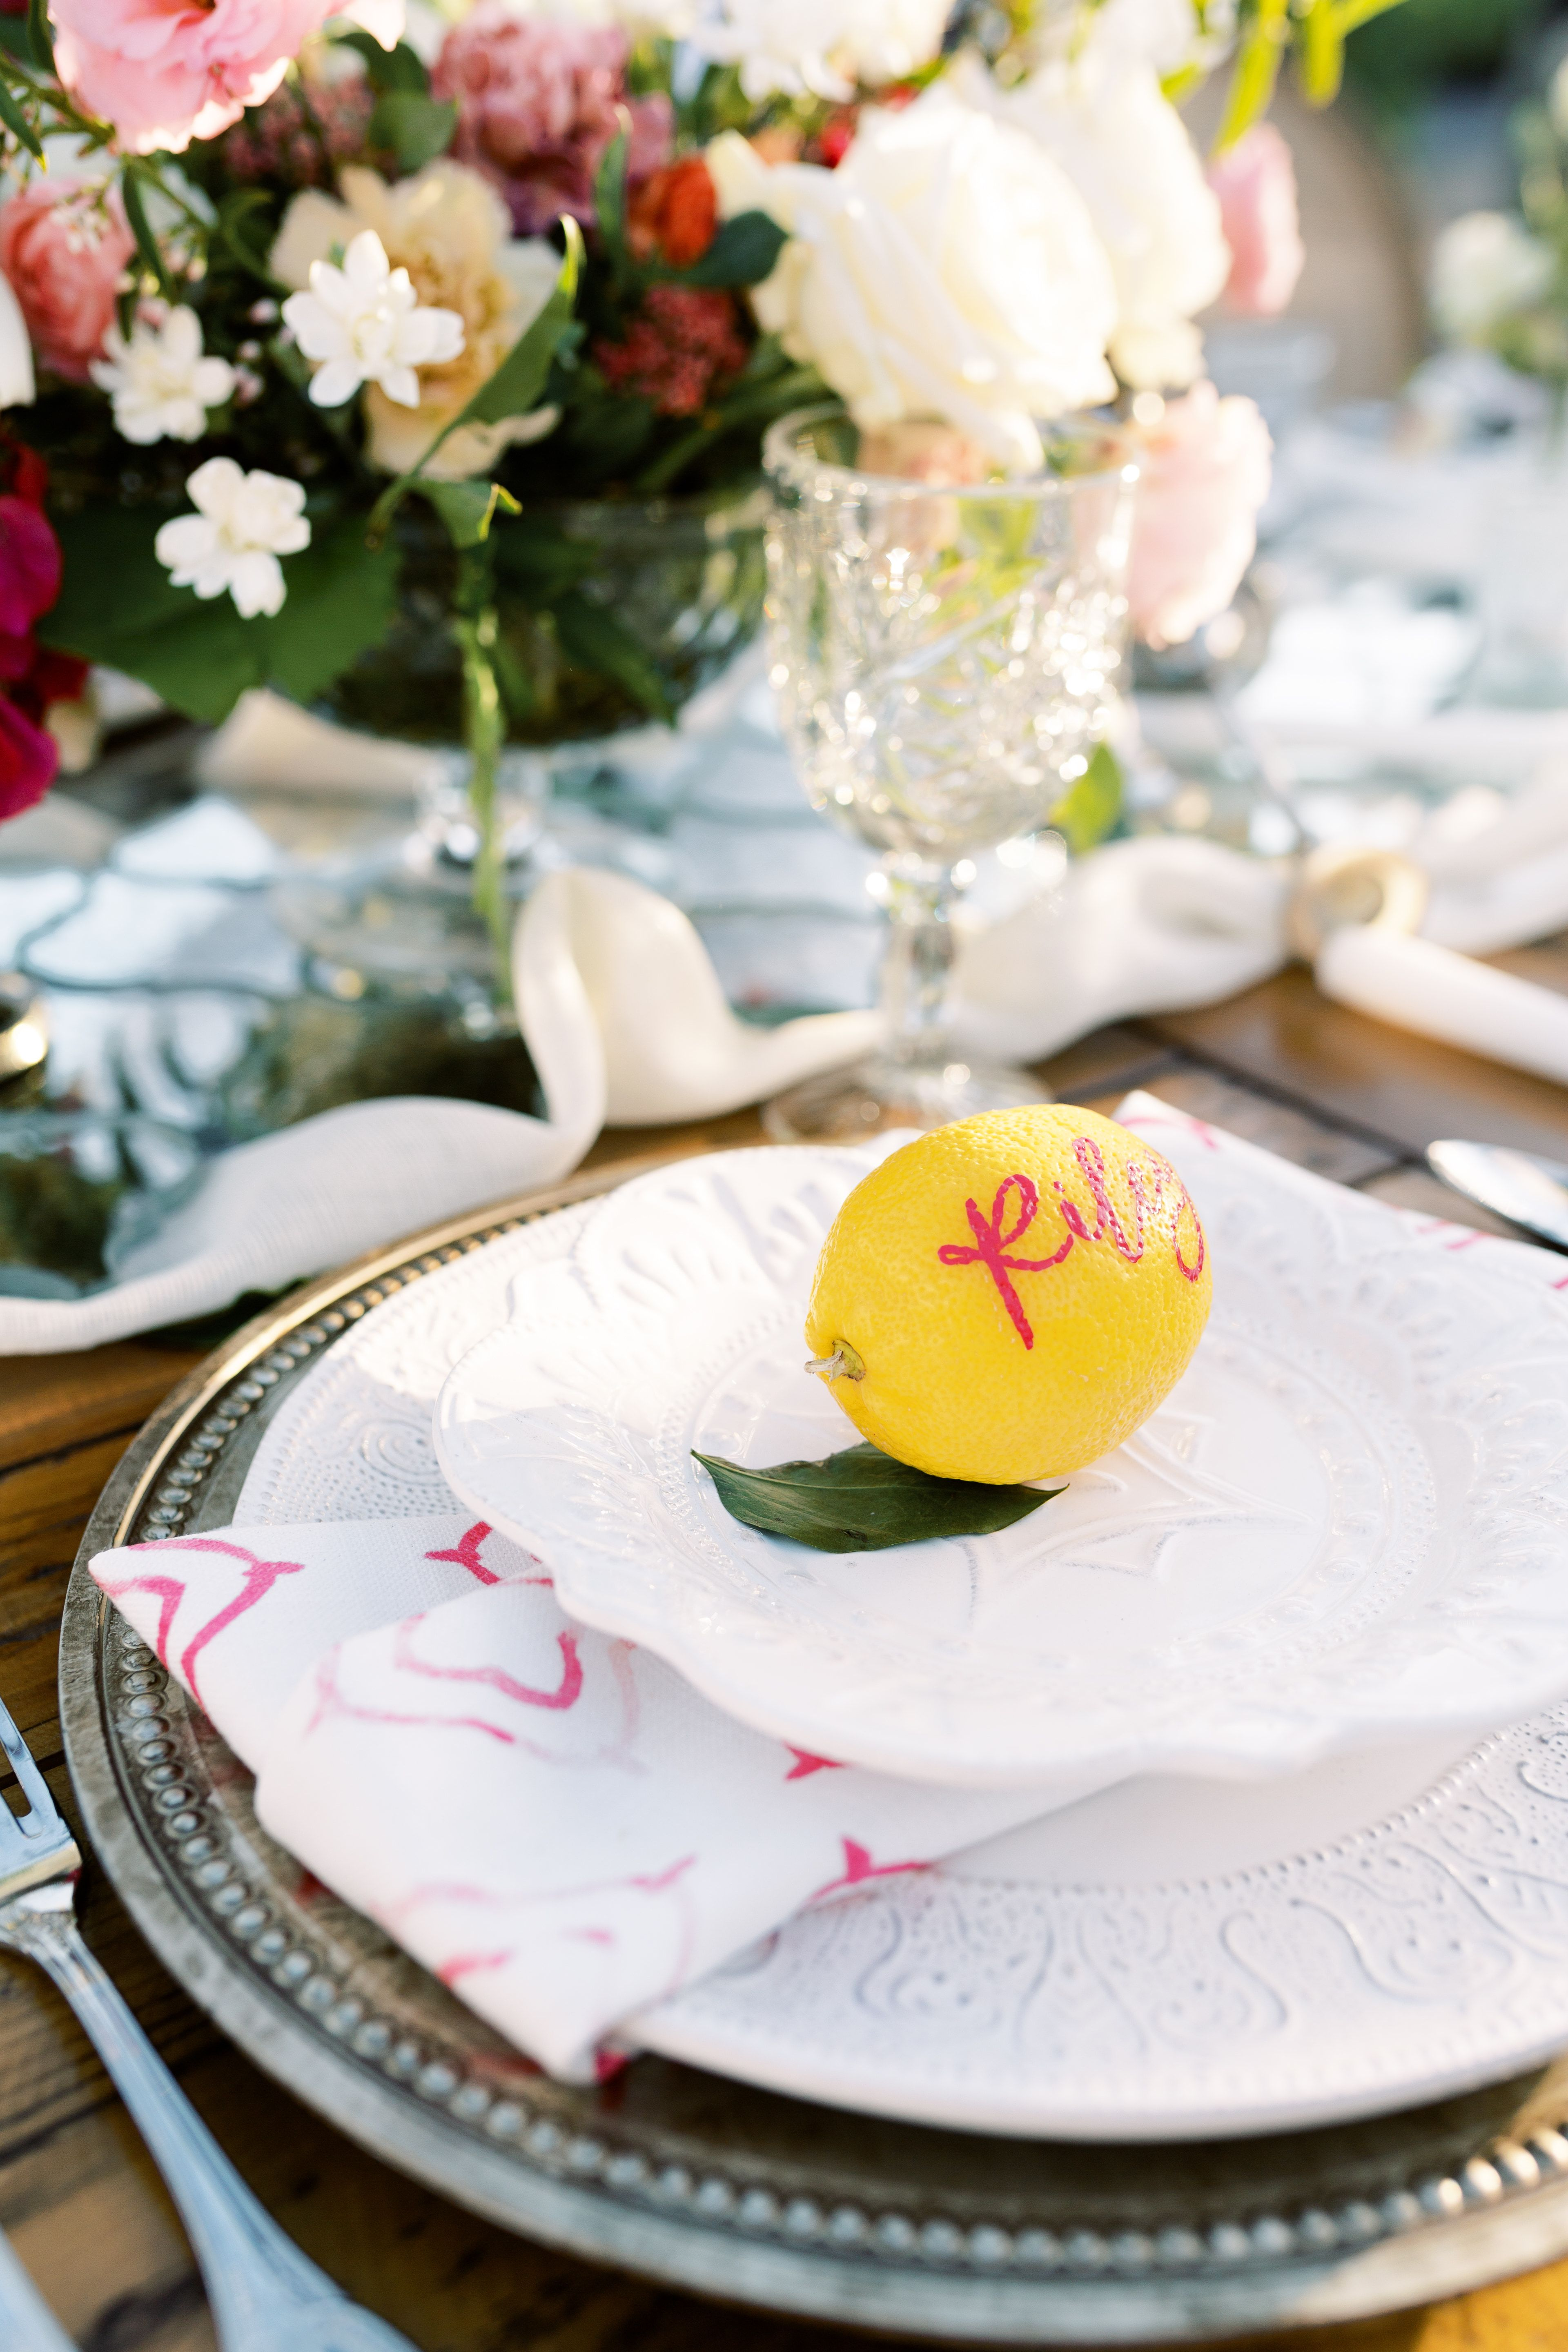 Cute Escort Card Idea Calligraphy on a lemon! Such a cute idea. See more ideas from luxury wedding planner, Mandy Marie Creative here.